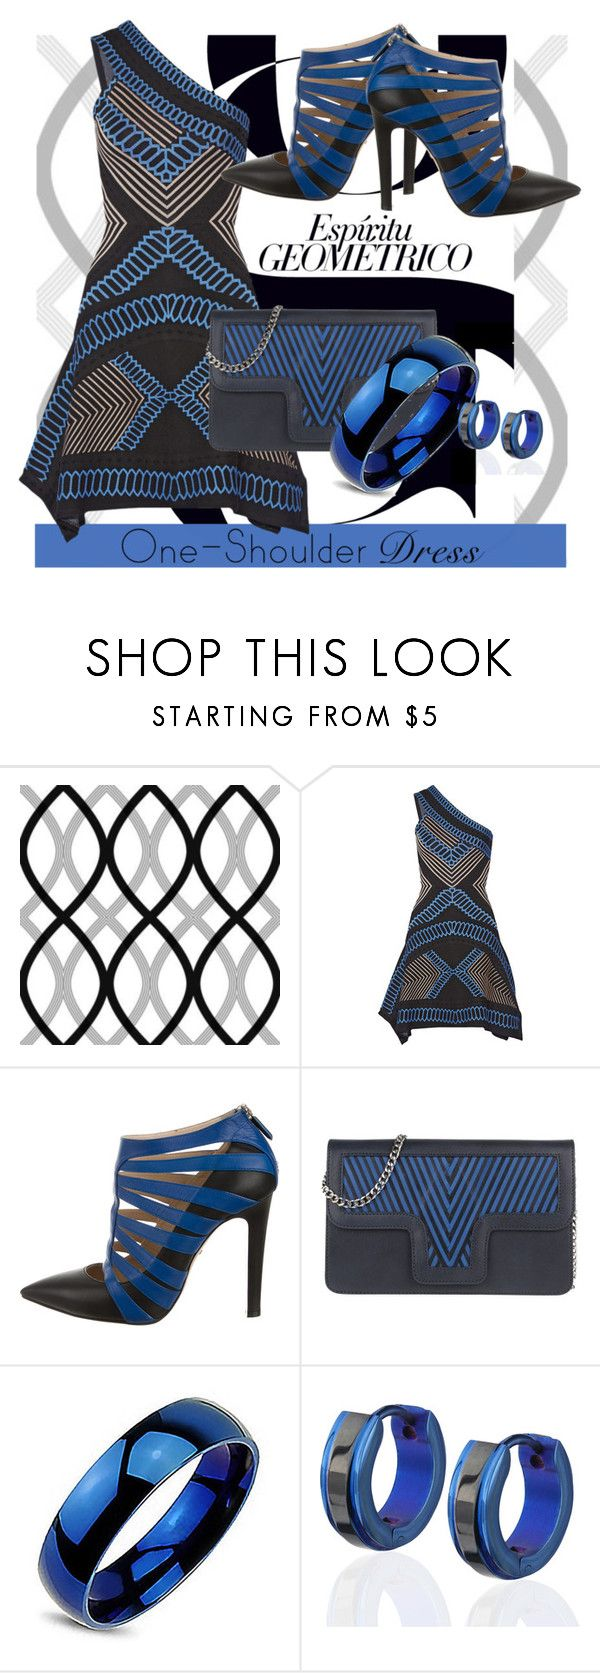 """Party Style: One-Shoulder Dress – Contest Entry"" by geewhizart ❤ liked on Polyvore featuring Beacon, GINTA, Hervé Léger, Ruthie Davis, Lili Radu, West Coast Jewelry and dress"